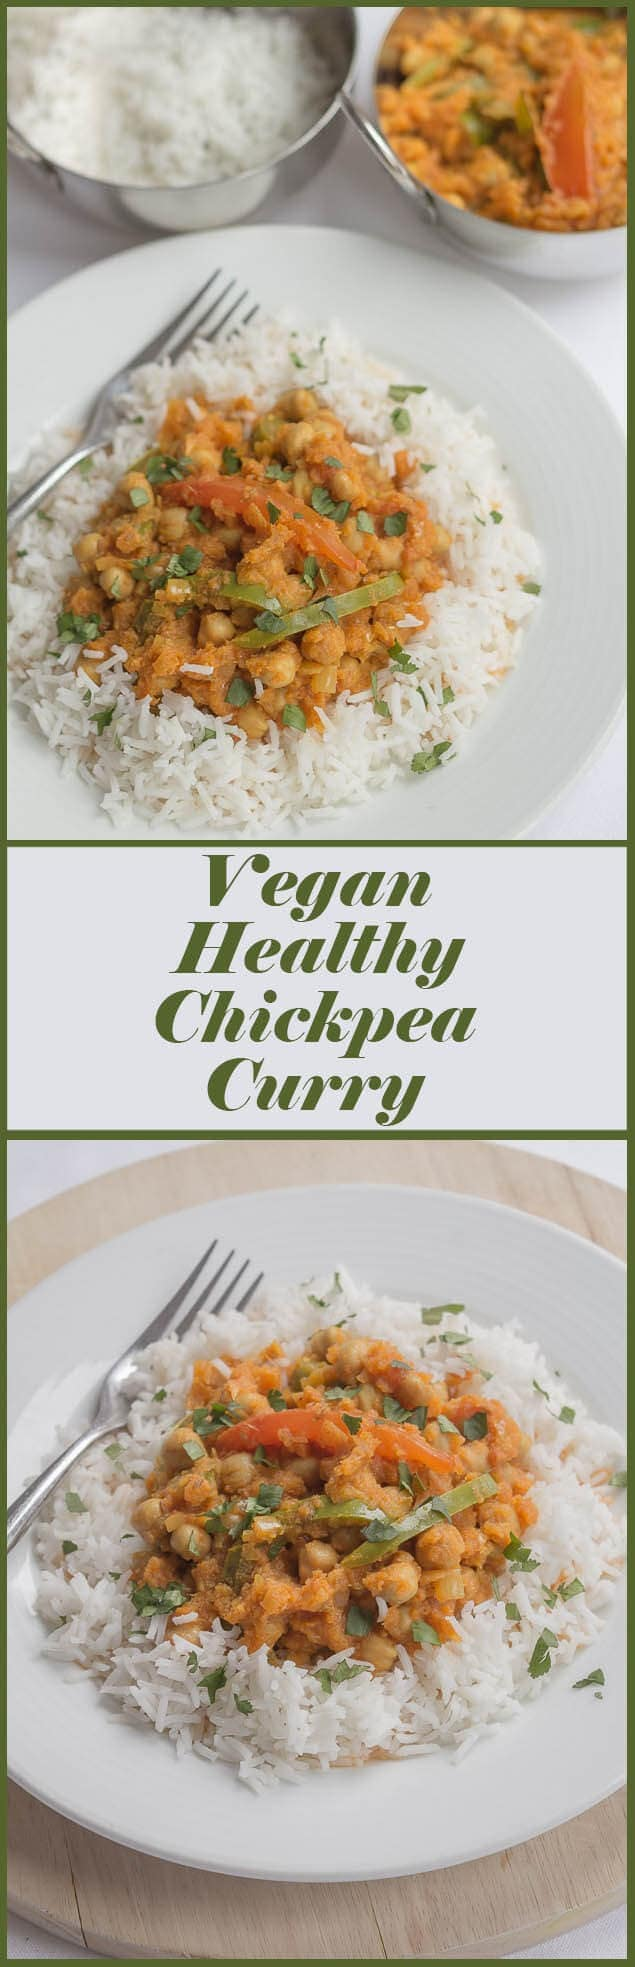 This tasty vegan healthy chickpea curry is low cost, low calorie and extremely filling. One portion alone provides nearly 80% of your daily recommended dietary fibre recommendation.